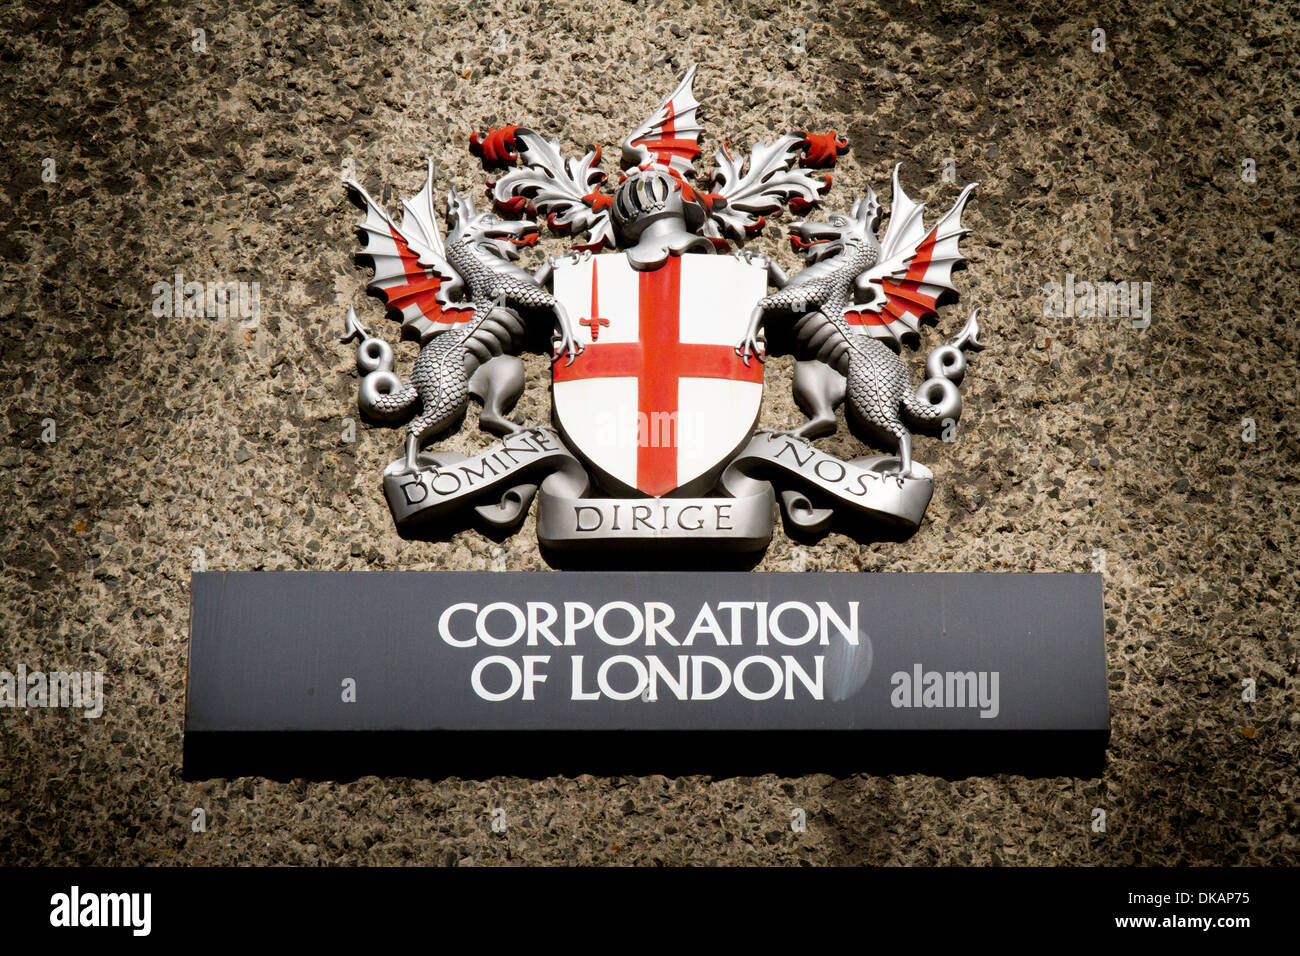 Corporation of London, Coat of Arms wall plaque in the City of London - Stock Image